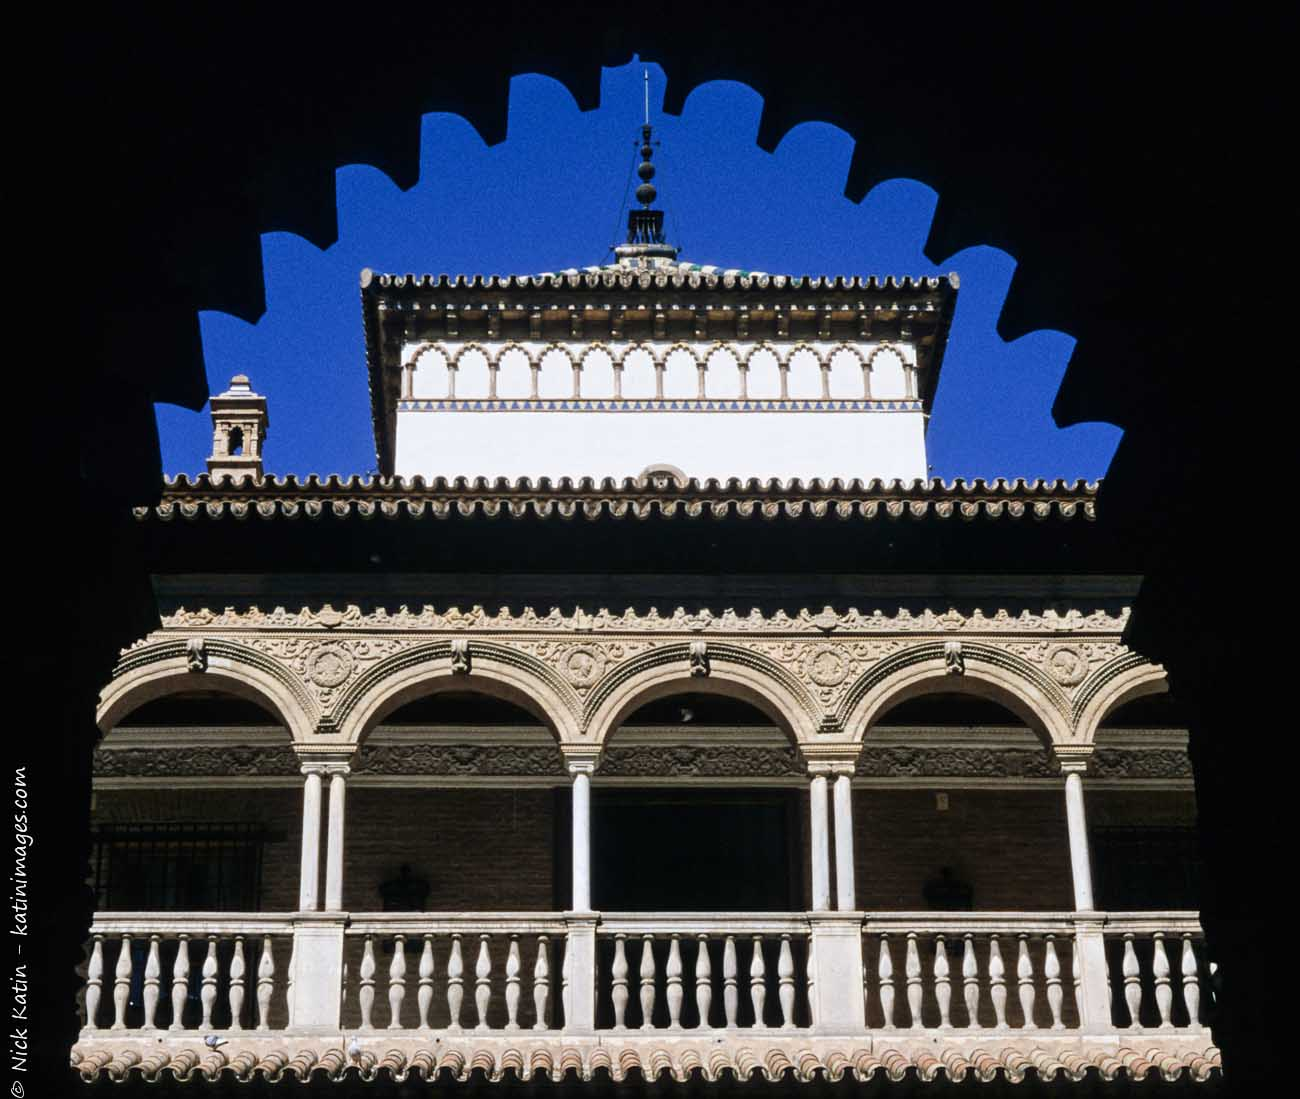 One of the beautifully crafted buidlings of the Alcazar in Seville, Spain